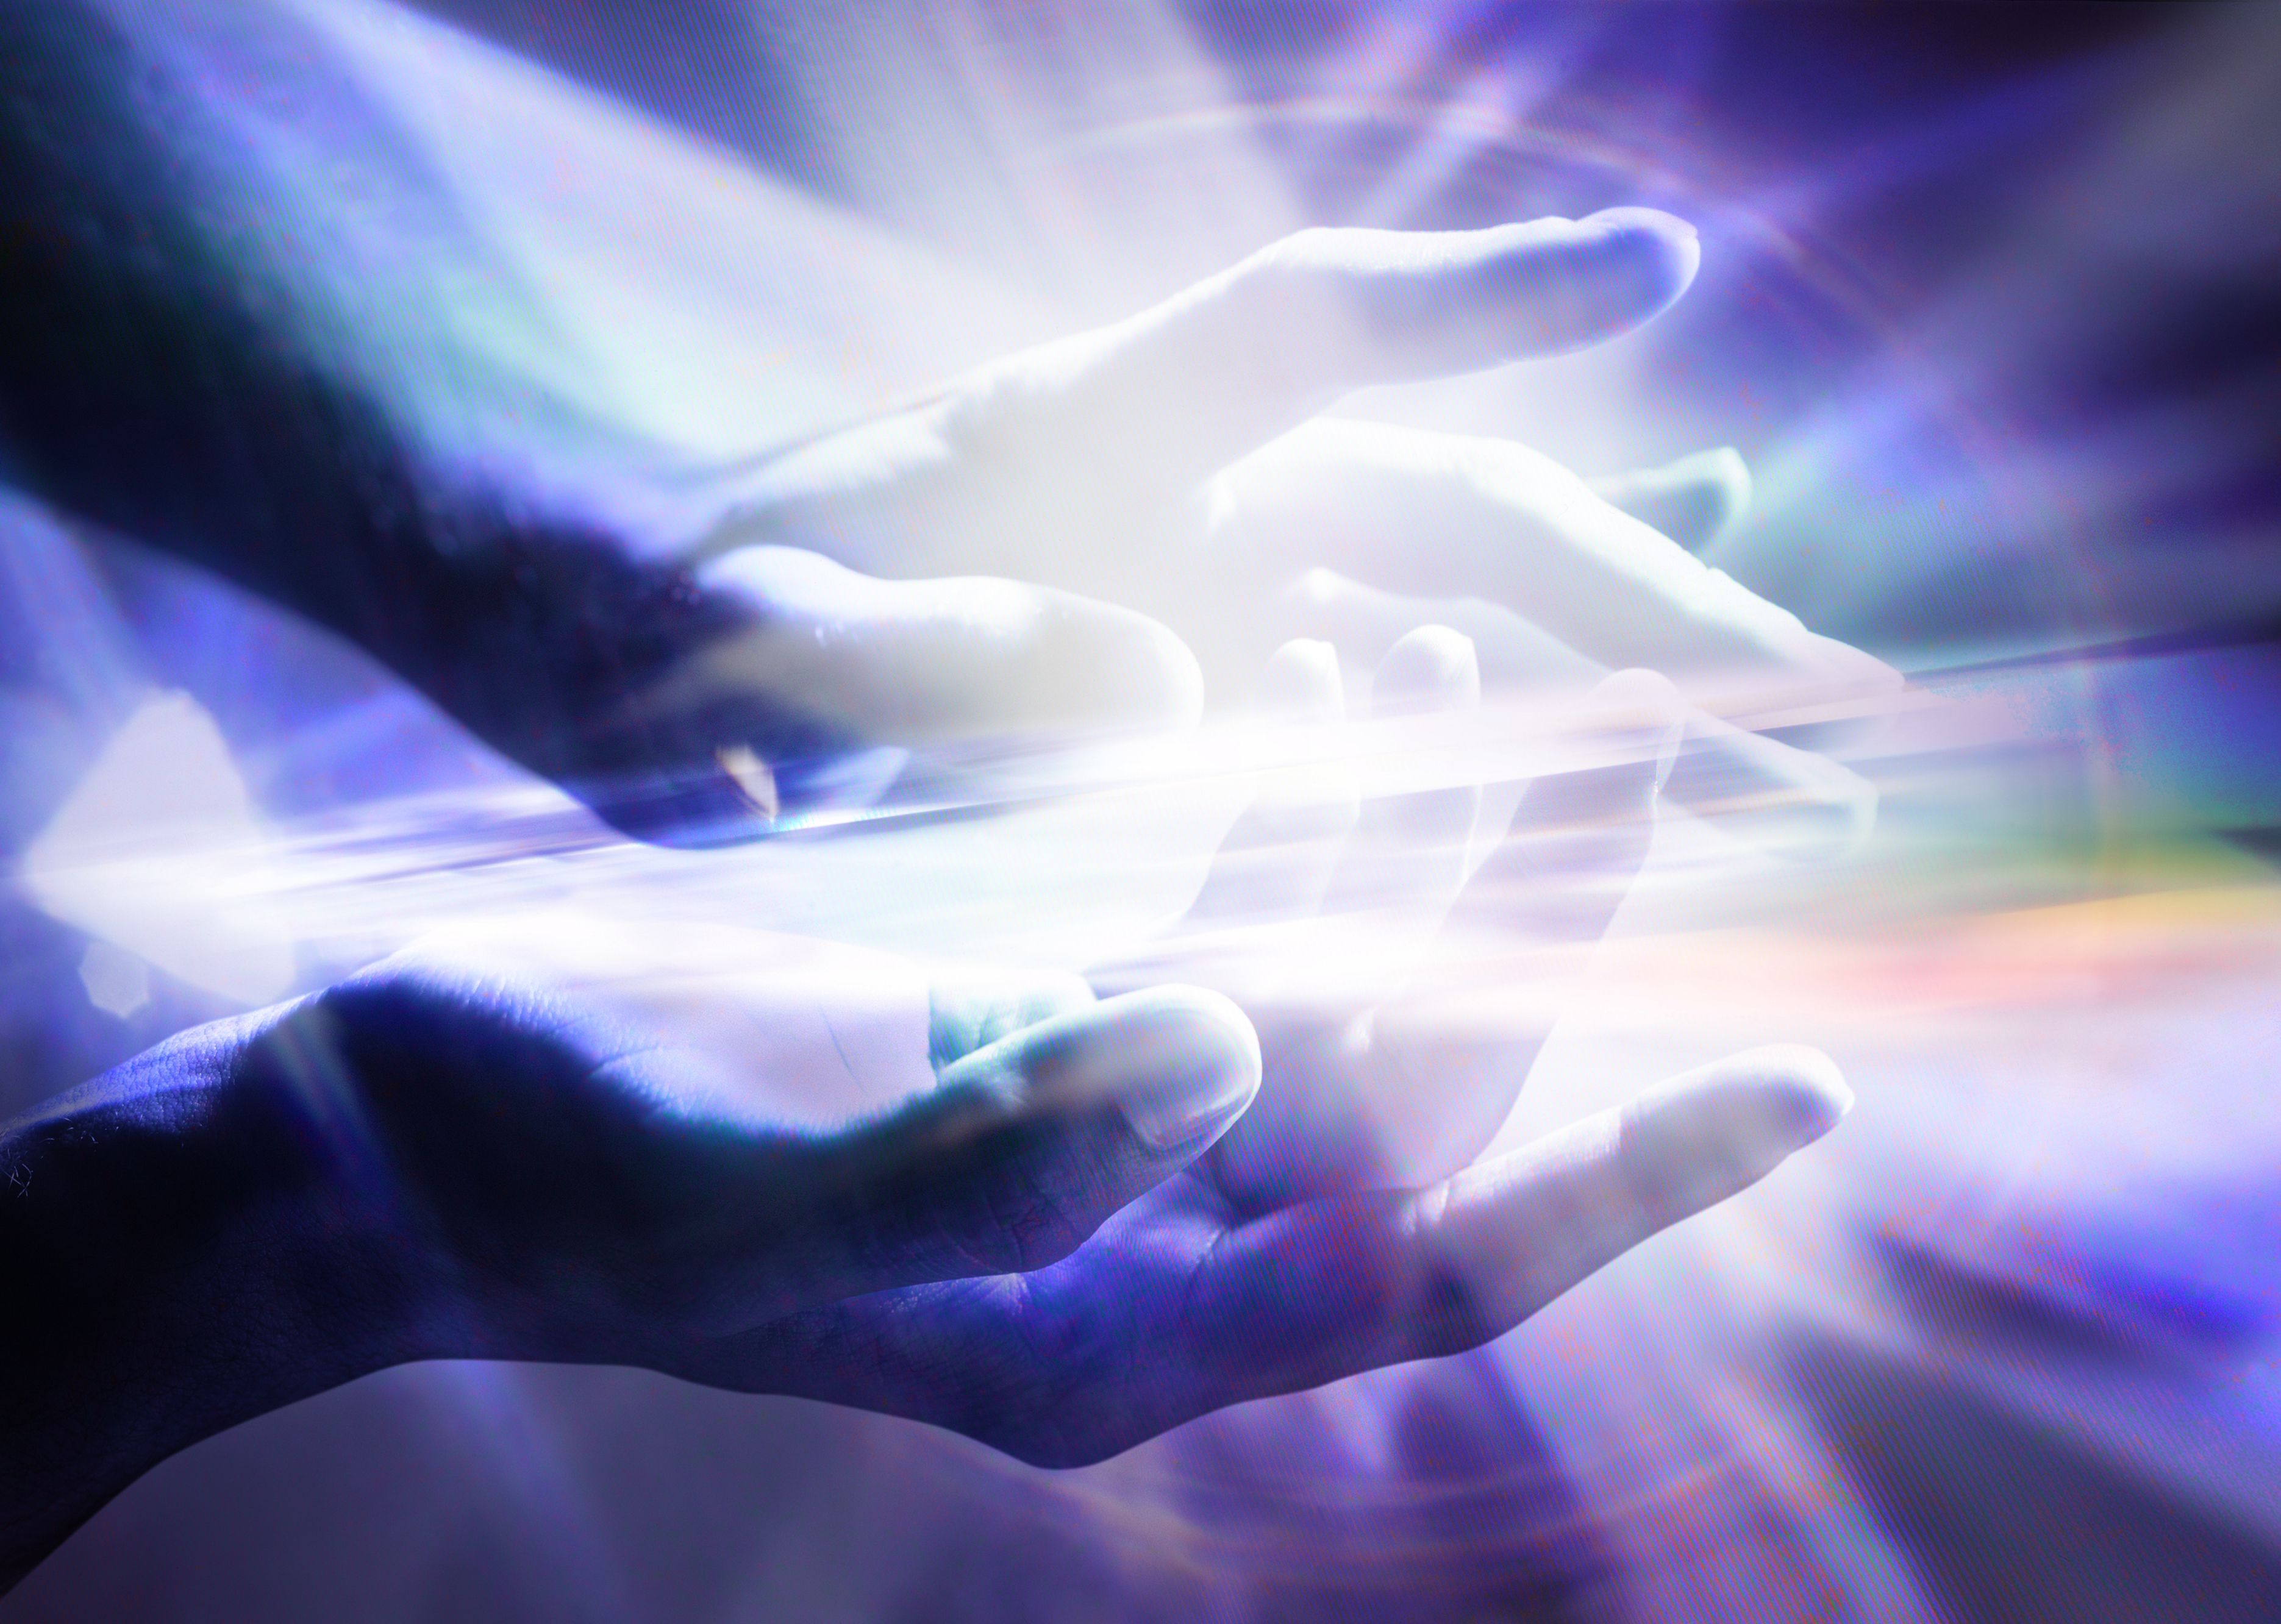 Reiki attunement stories as told by reiki practitioners buycottarizona Gallery